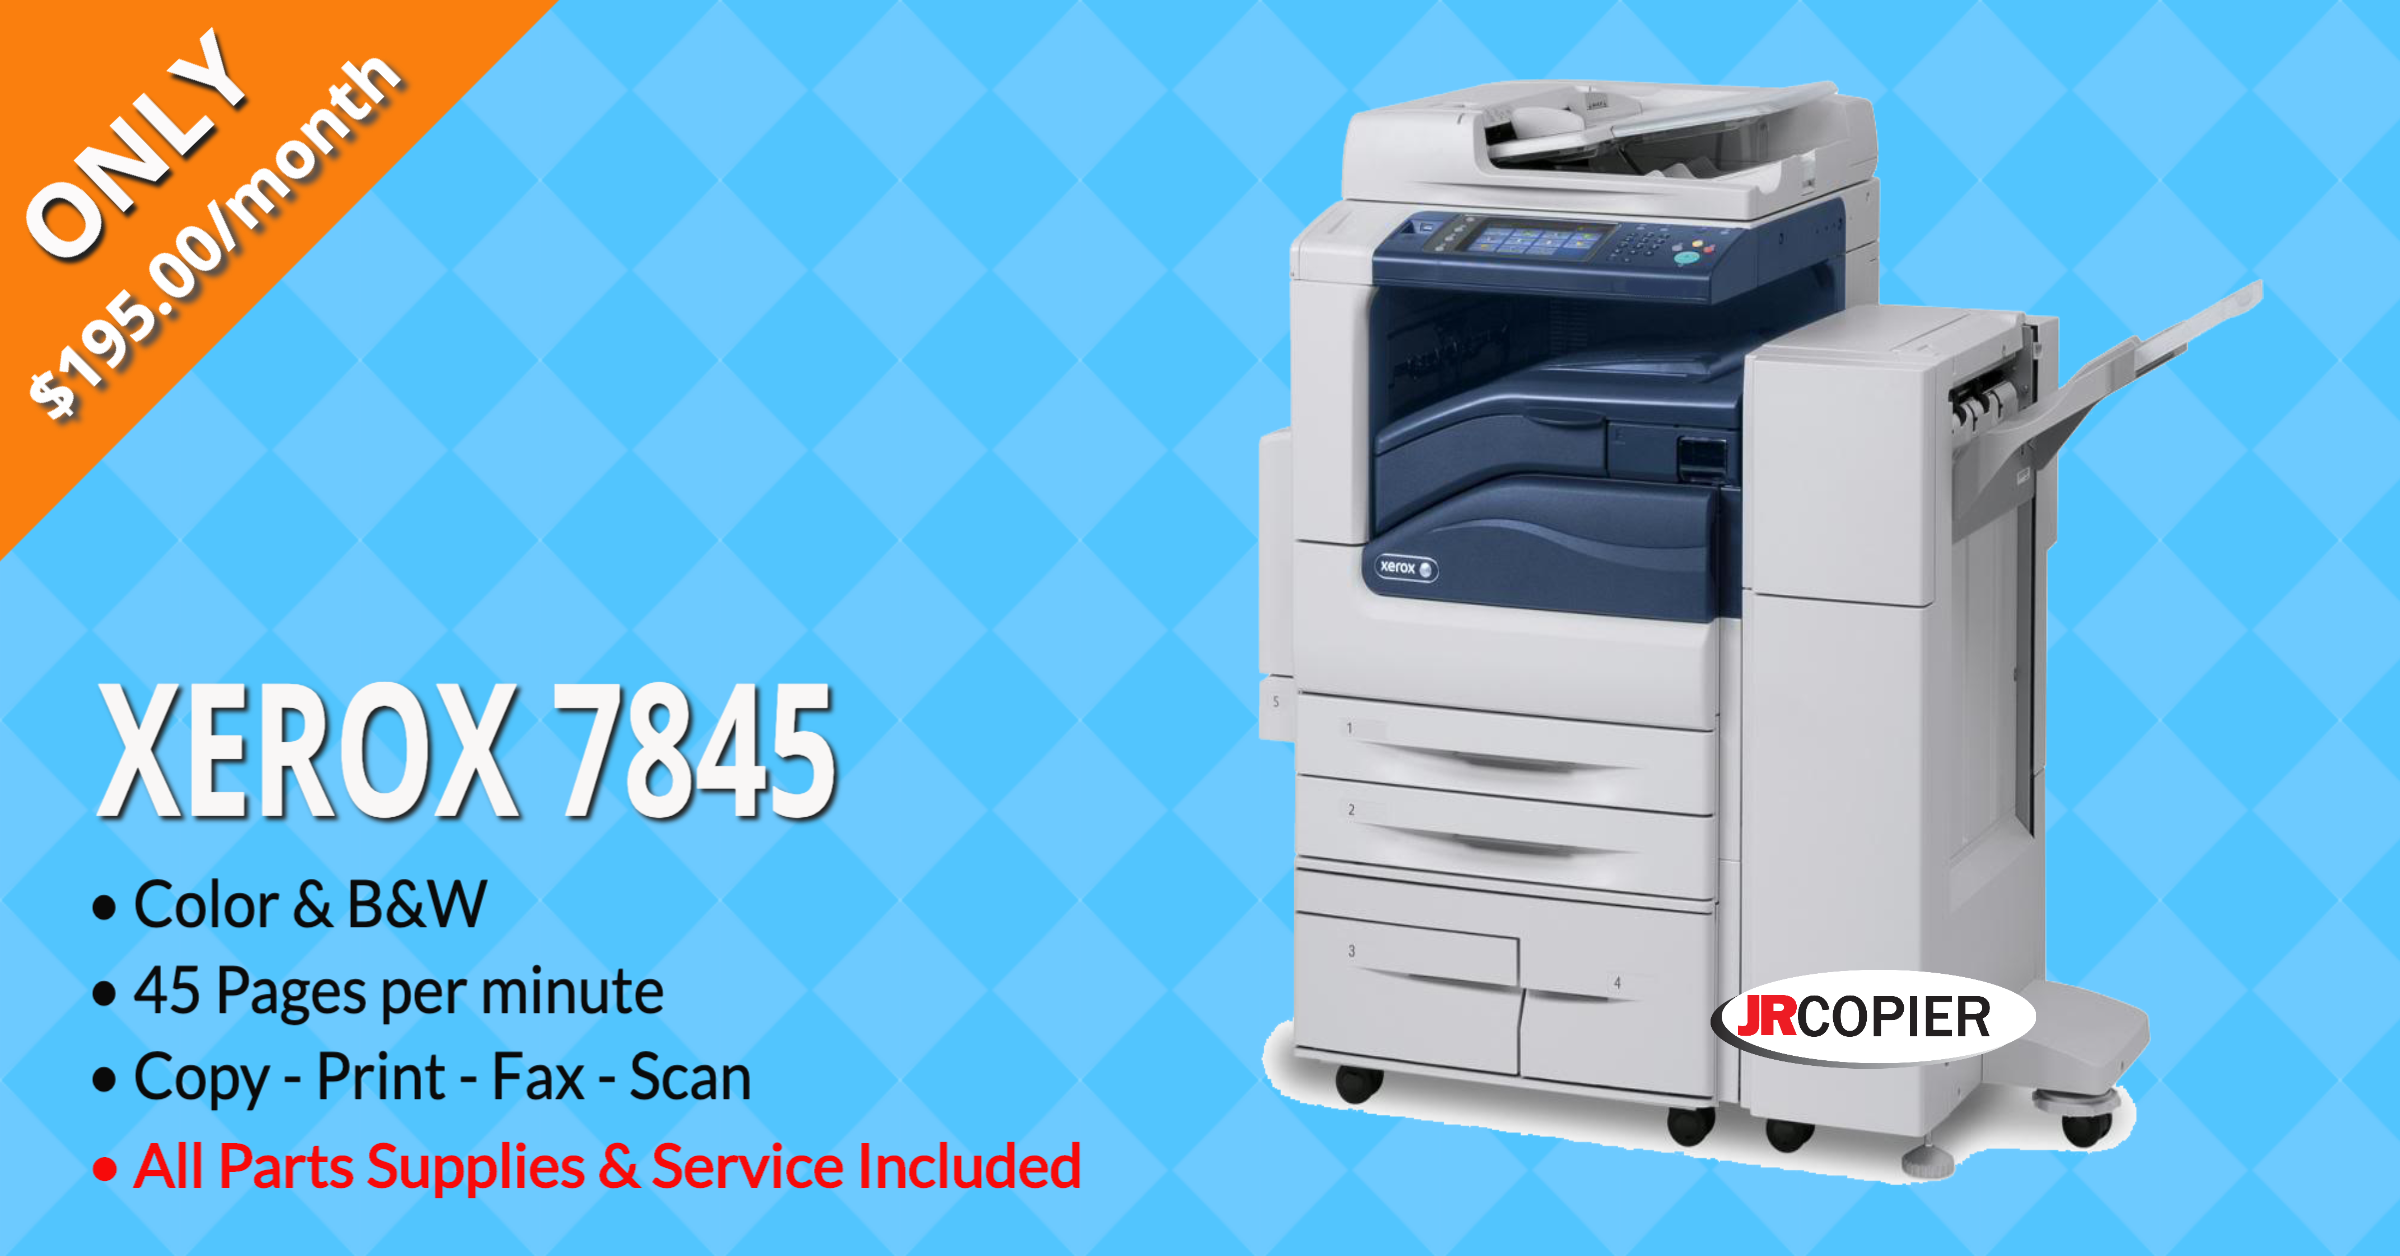 Copy Machine Companies 95127